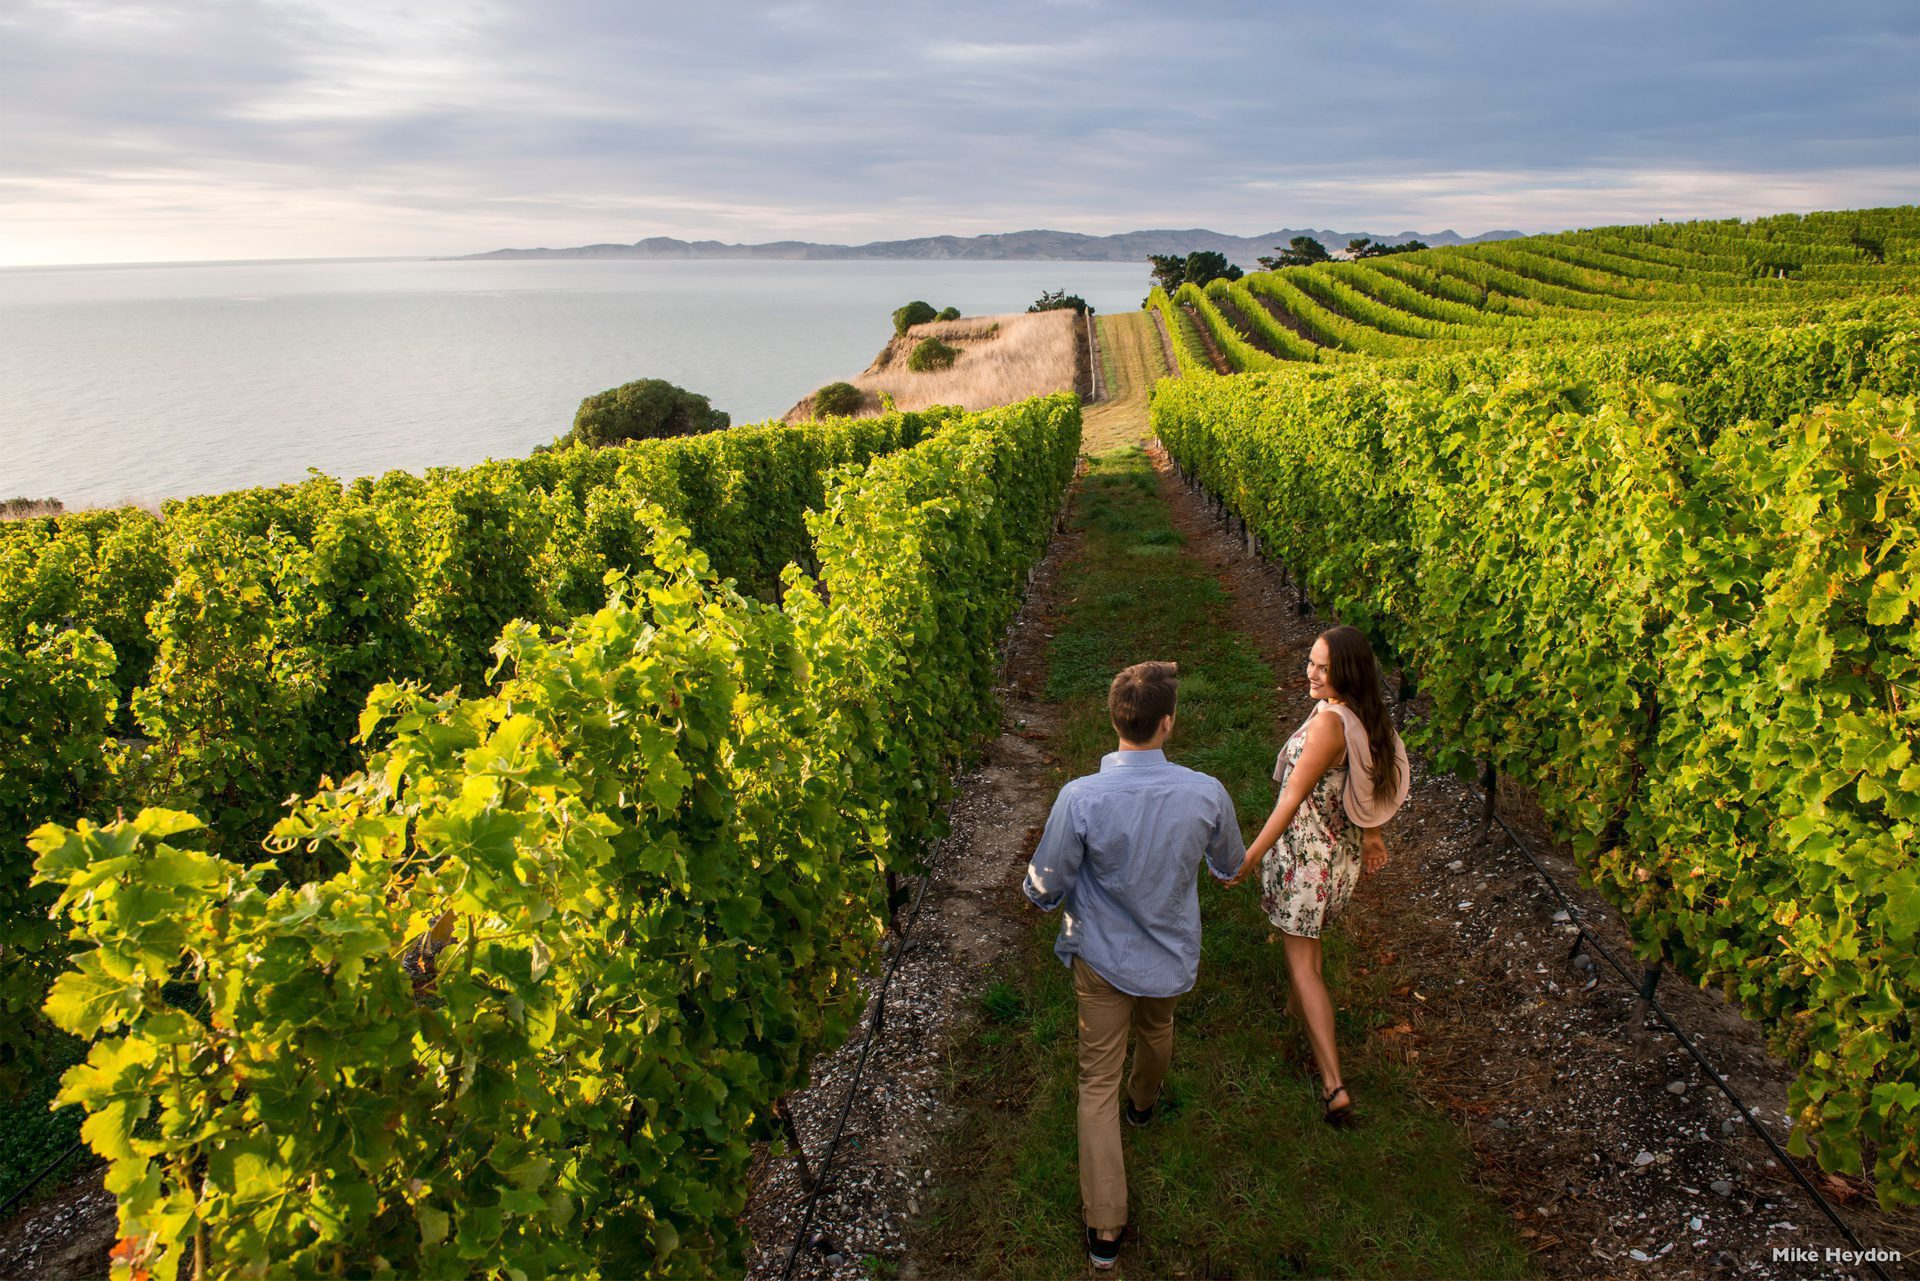 Blenheim Marlborough couple exploring vineyard on New Zealand's South Island tour